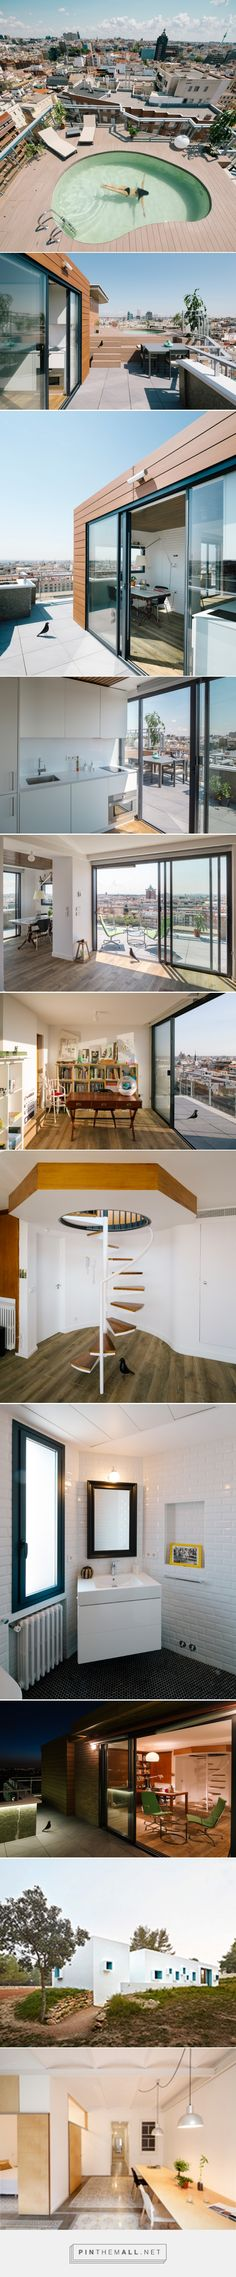 i! arquitectura tops madrid apartment renovation with rooftop pool - created via https://pinthemall.net